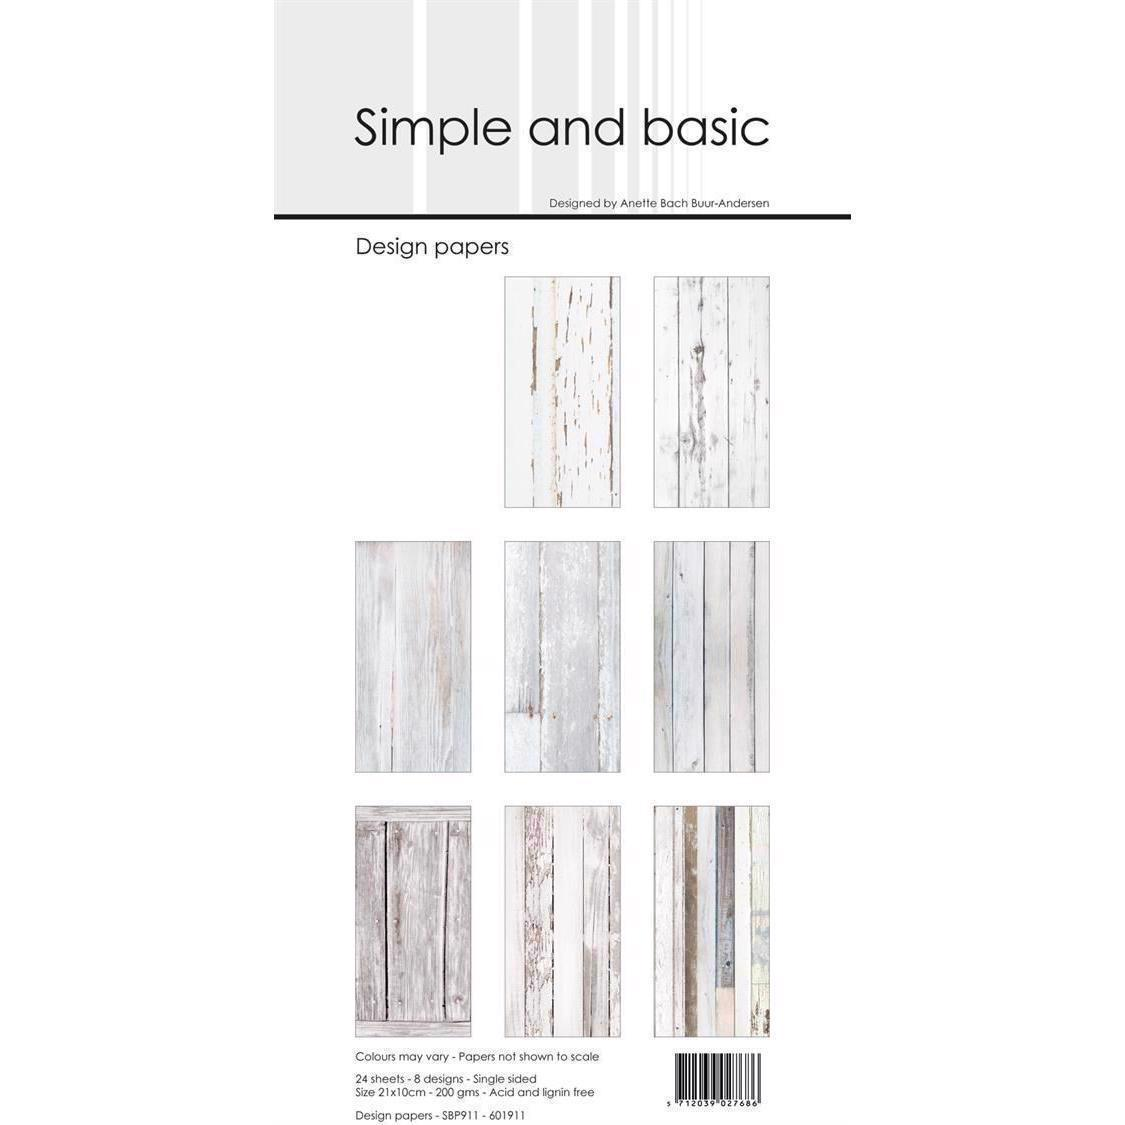 Simple and Basic Design Papers - White Wood 10x21 cm (slimcard)